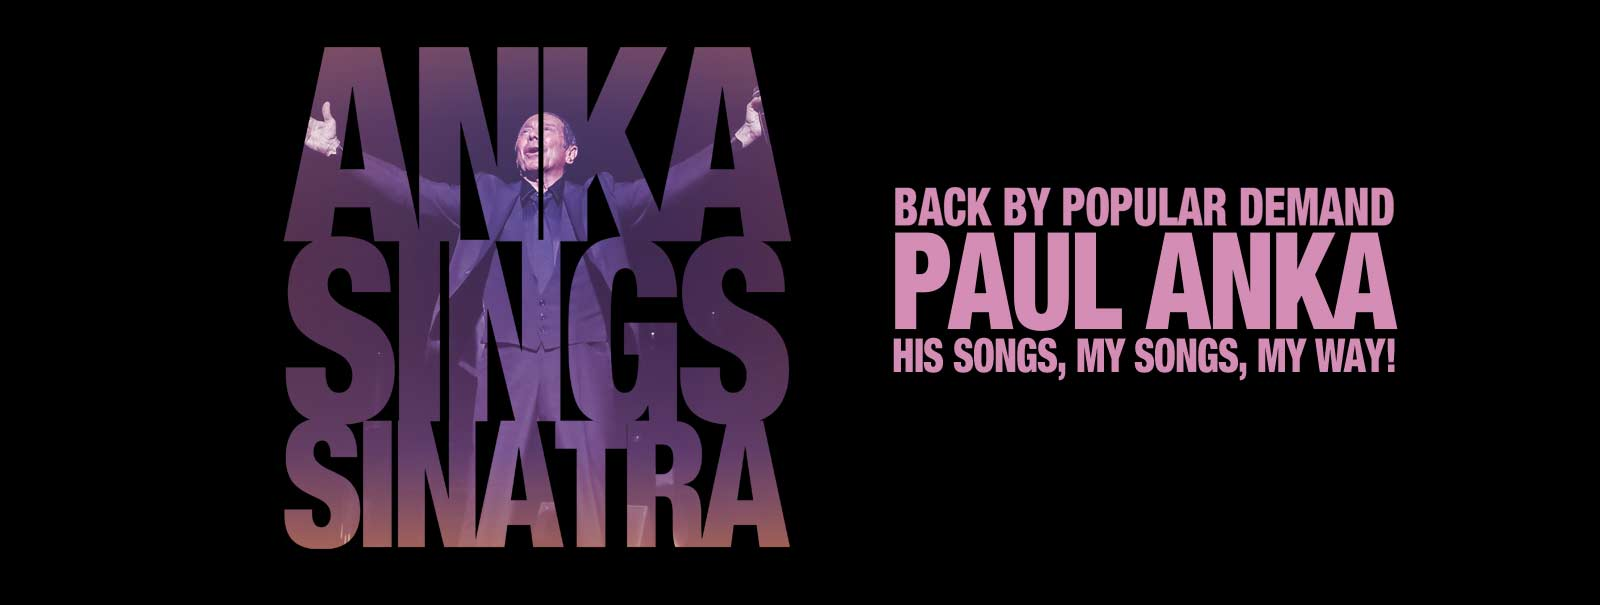 More Info - Paul Anka - Anka Sings Sinatra: His Songs, My Songs, My Way